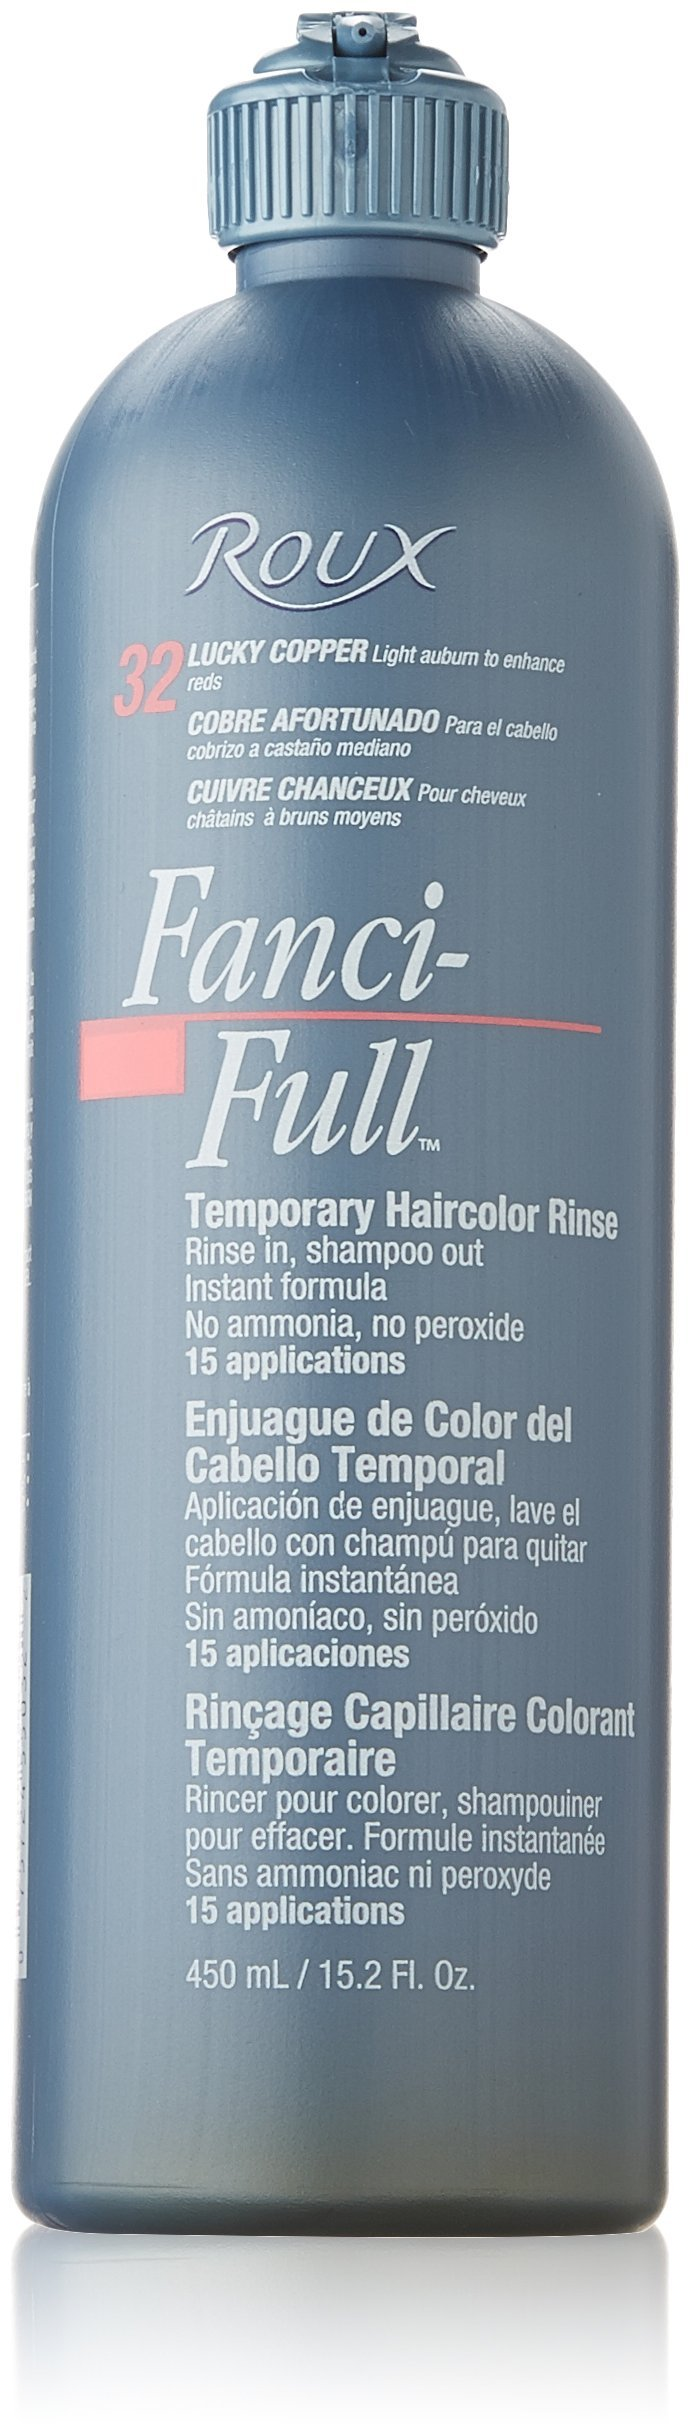 Roux Fanci-Full Rinse, 32 Lucky Copper, 15.2 Fluid Ounce by Roux